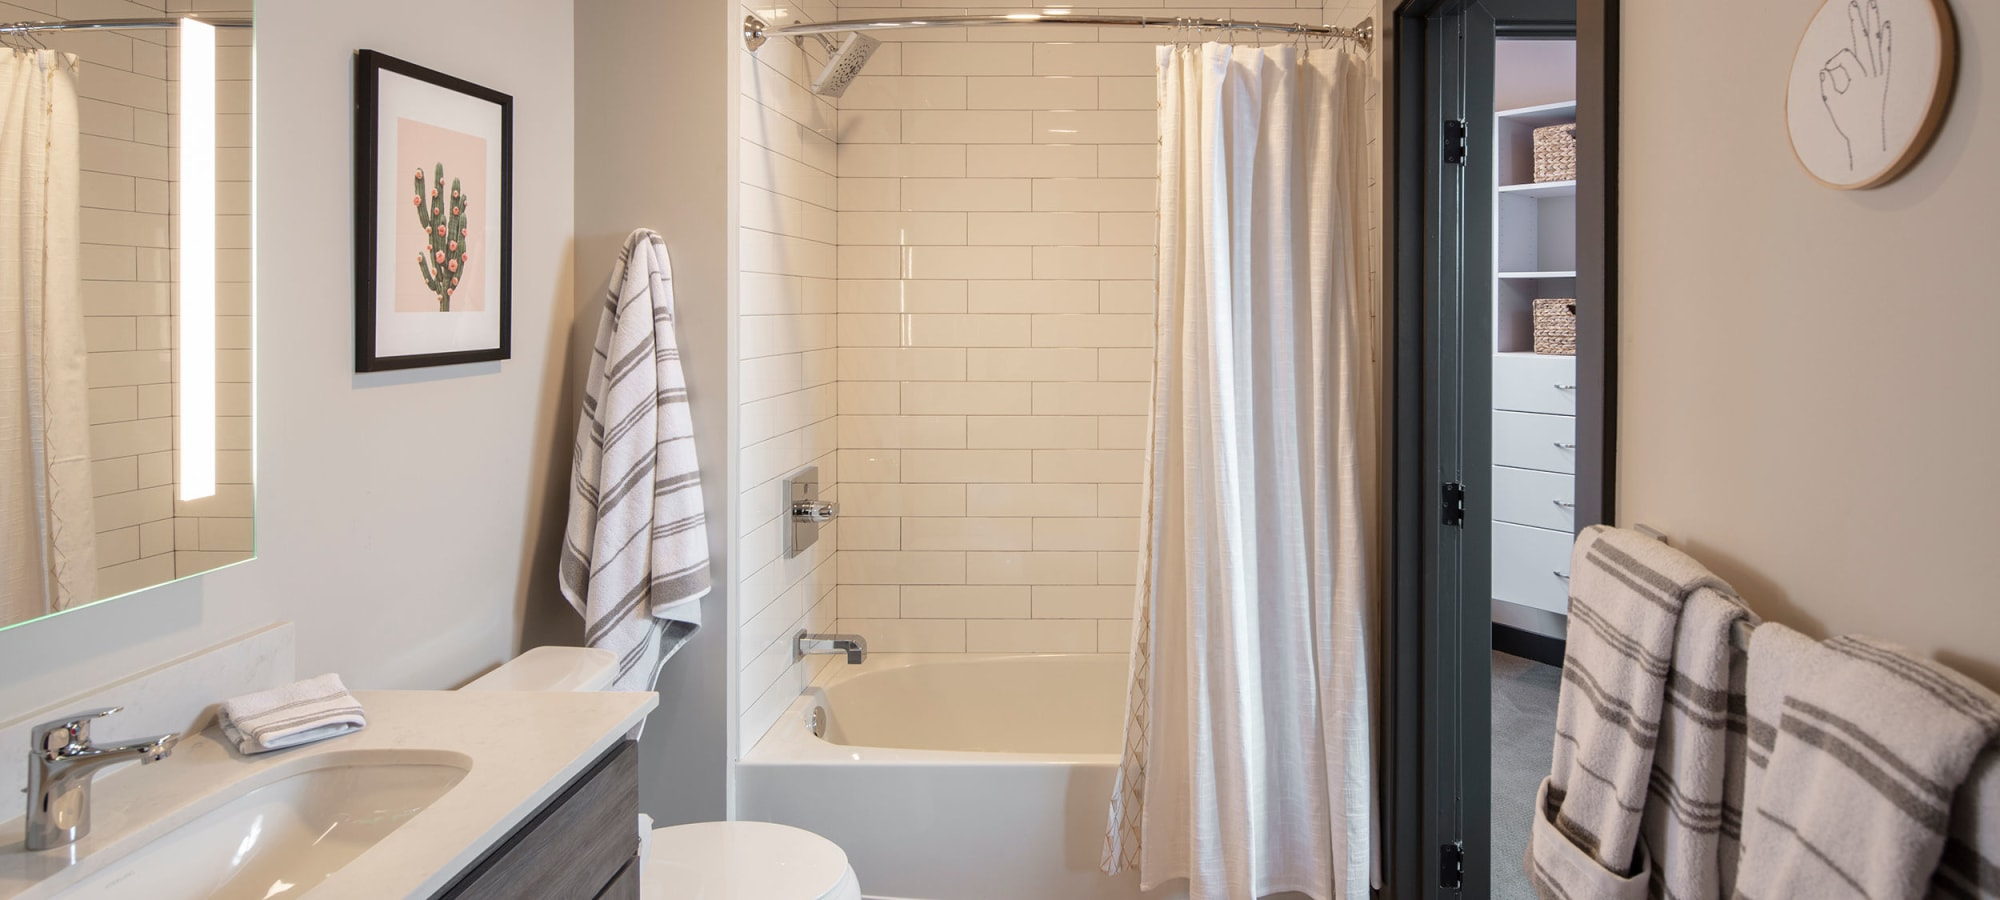 luxury bathroom with fixtures at The Local Apartments in Tempe, Arizona